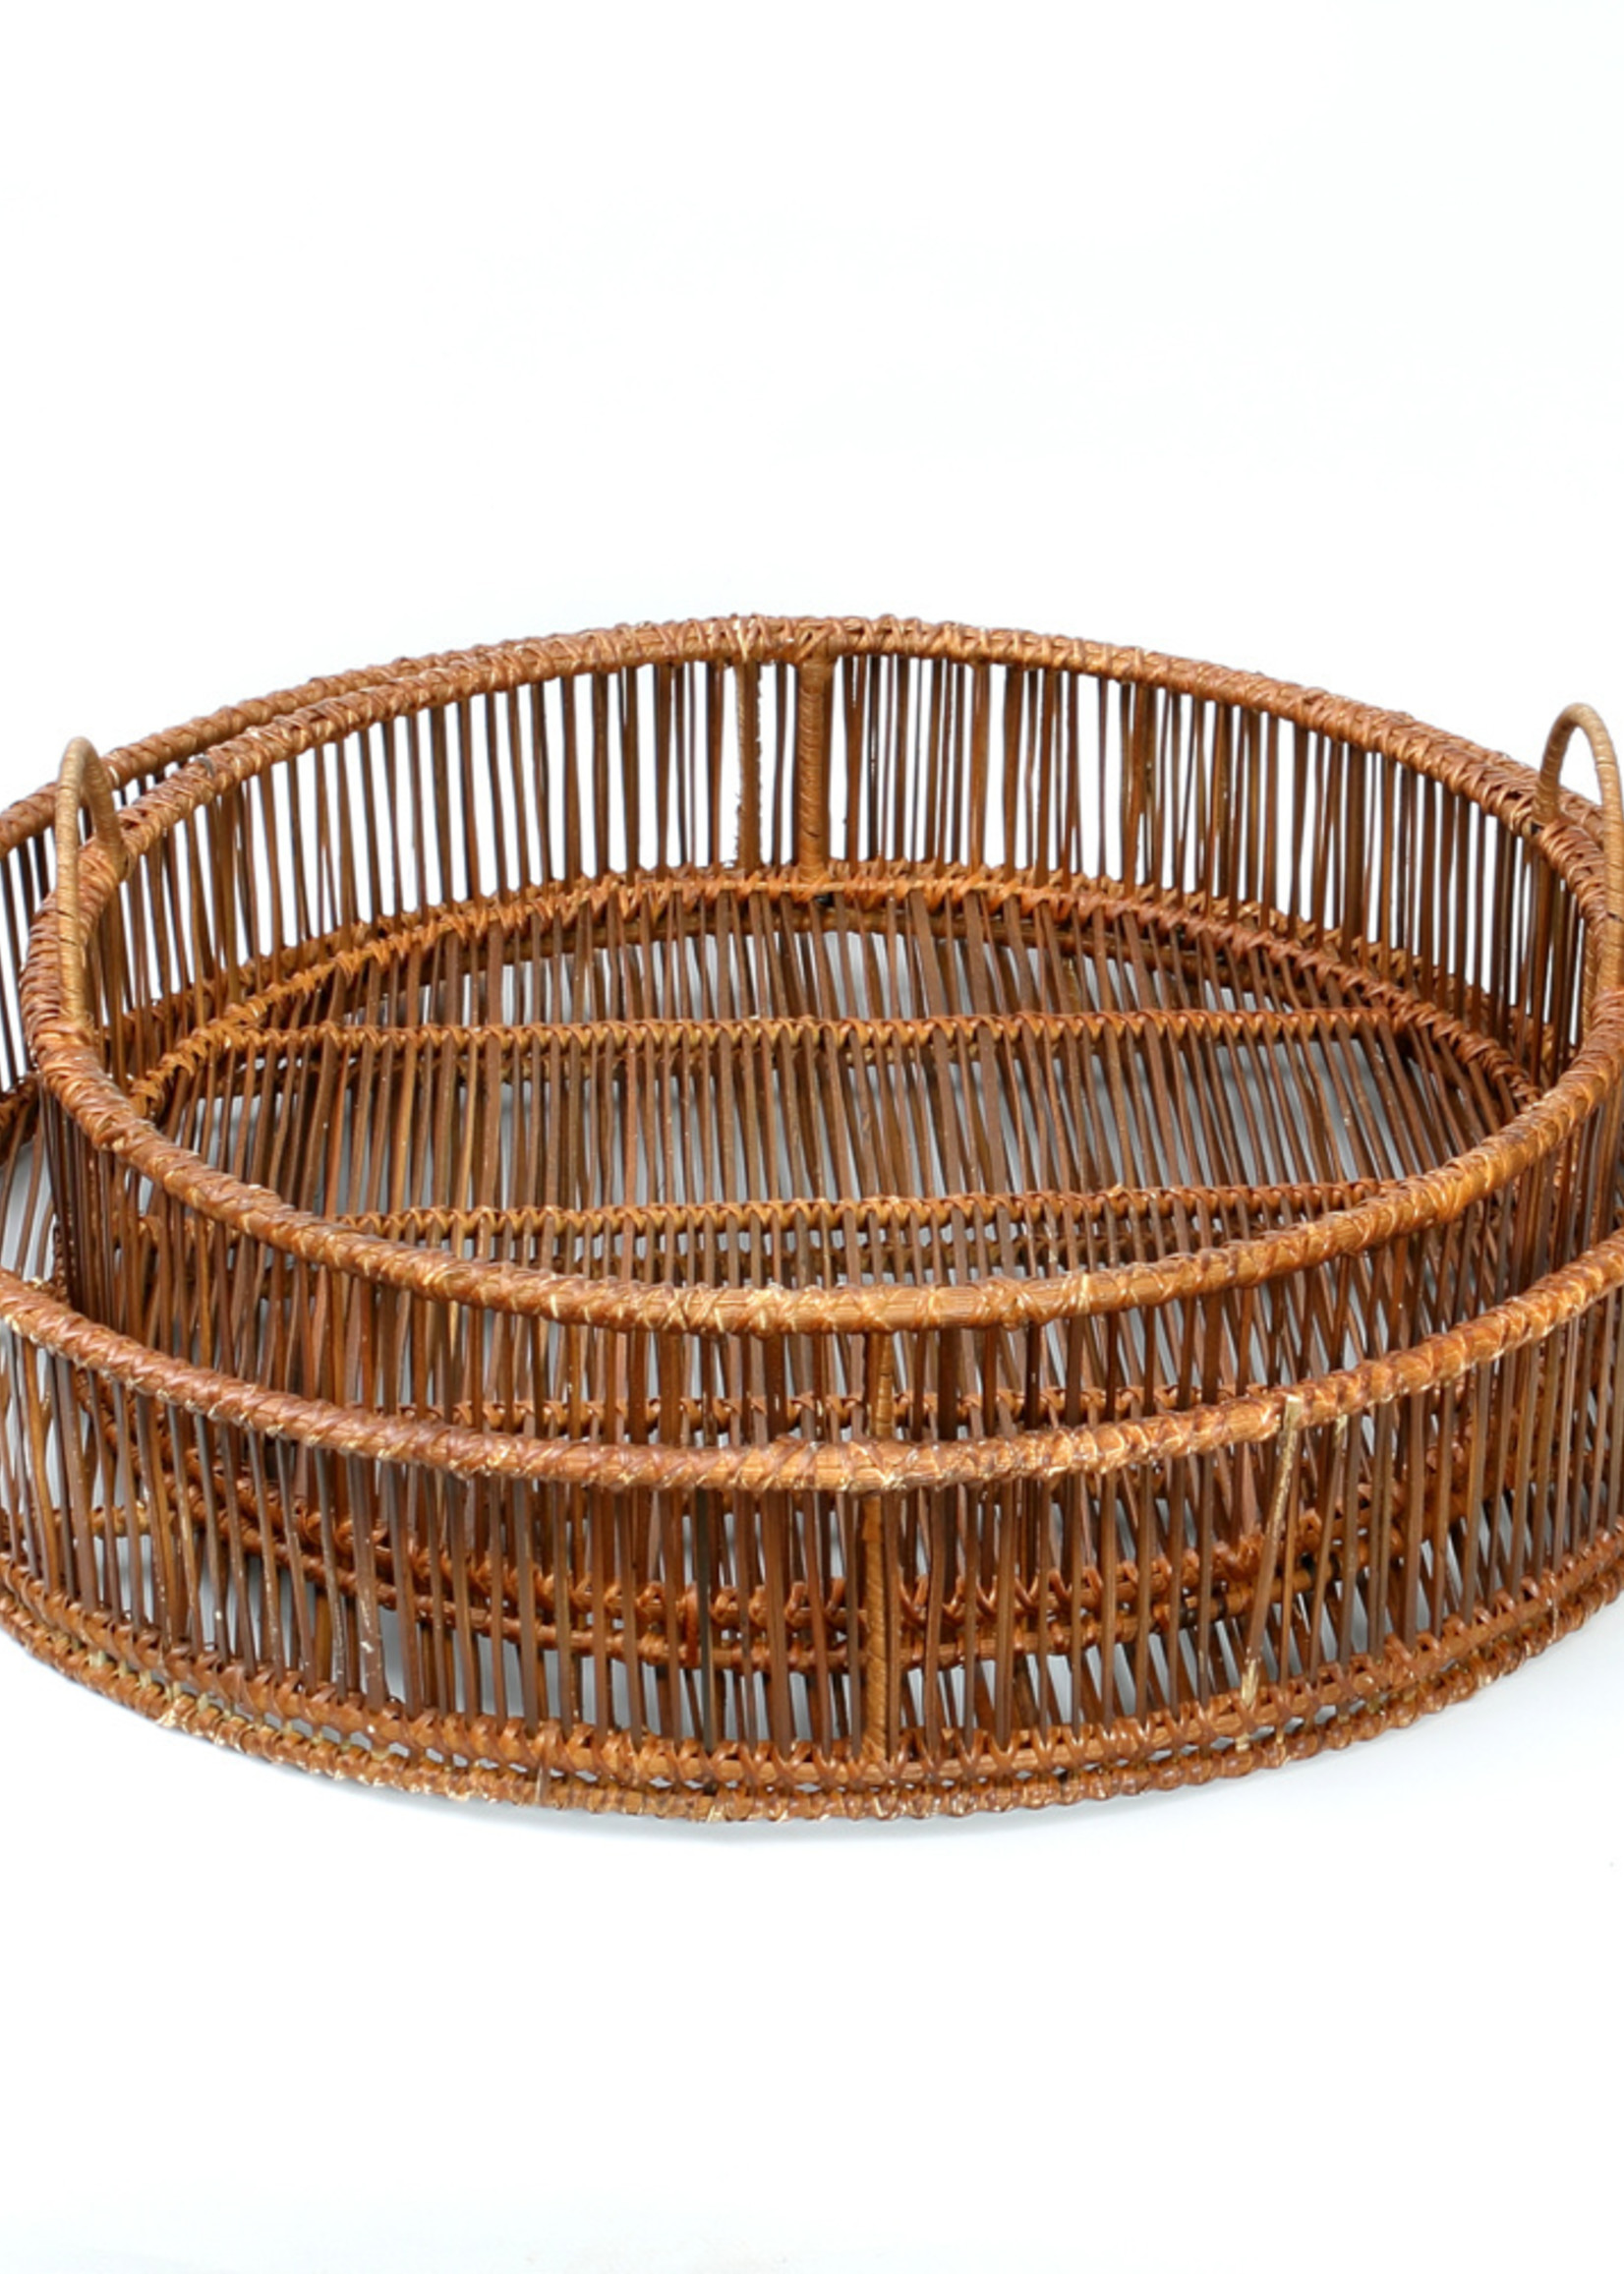 The Rattan Trays - Round - Natural - SET2